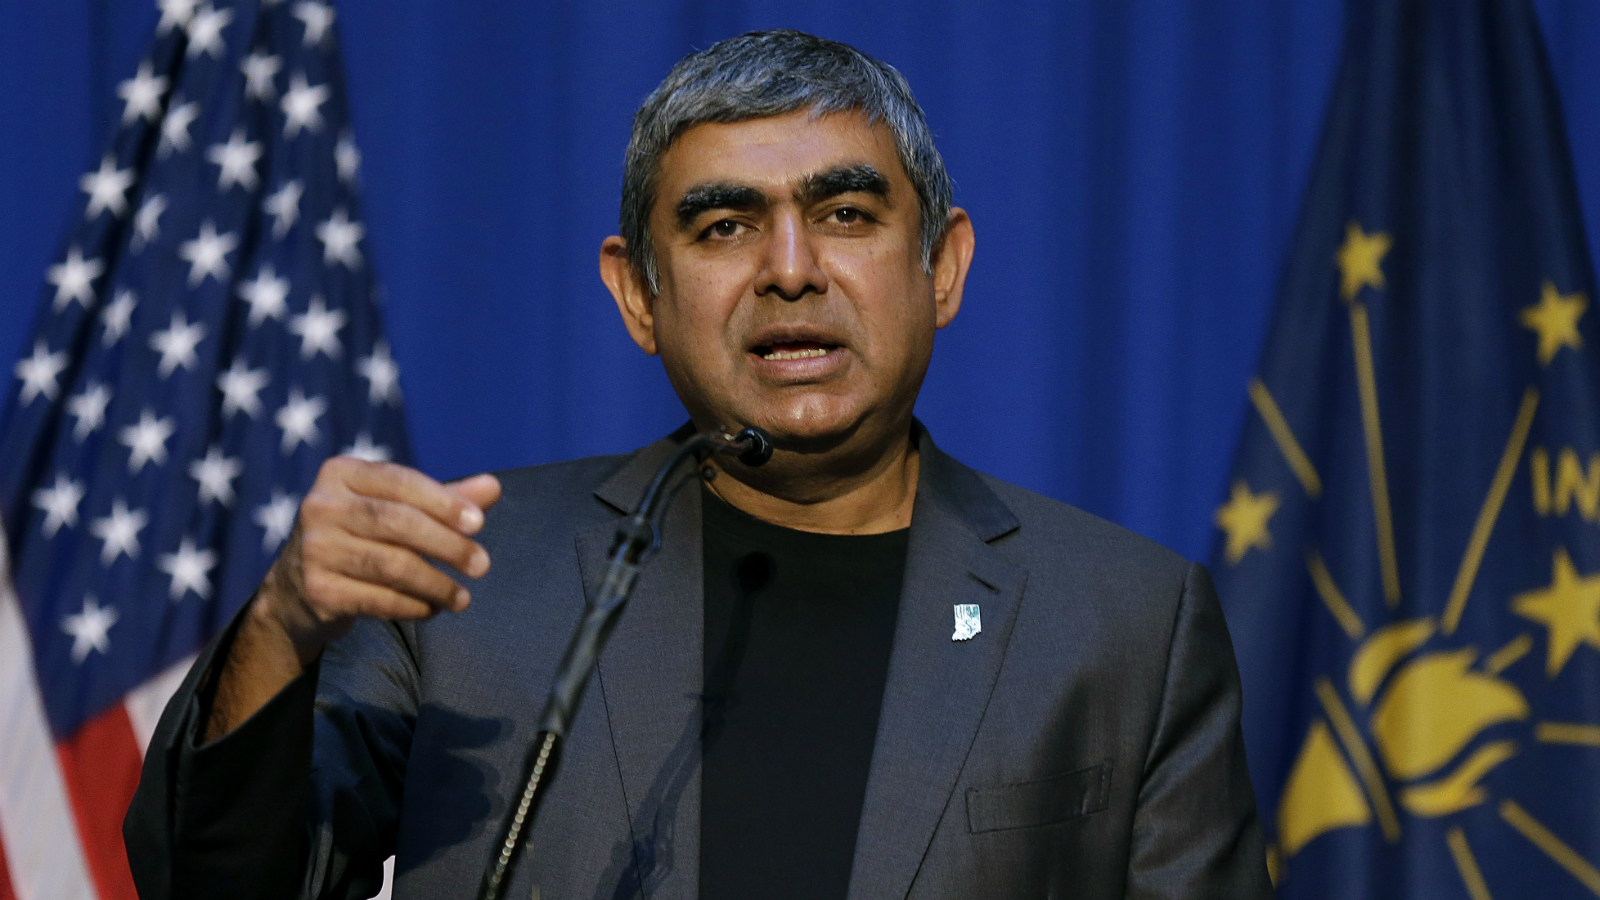 Dr. Vishal Sikka, chief executive officer of Infosys, announces at the Statehouse in Indianapolis, Tuesday, May 2, 2017 plans to increase its operations in the U.S, establishing four new state-of-the-art technology and innovation hubs in the U.S., with the first one in Indiana.